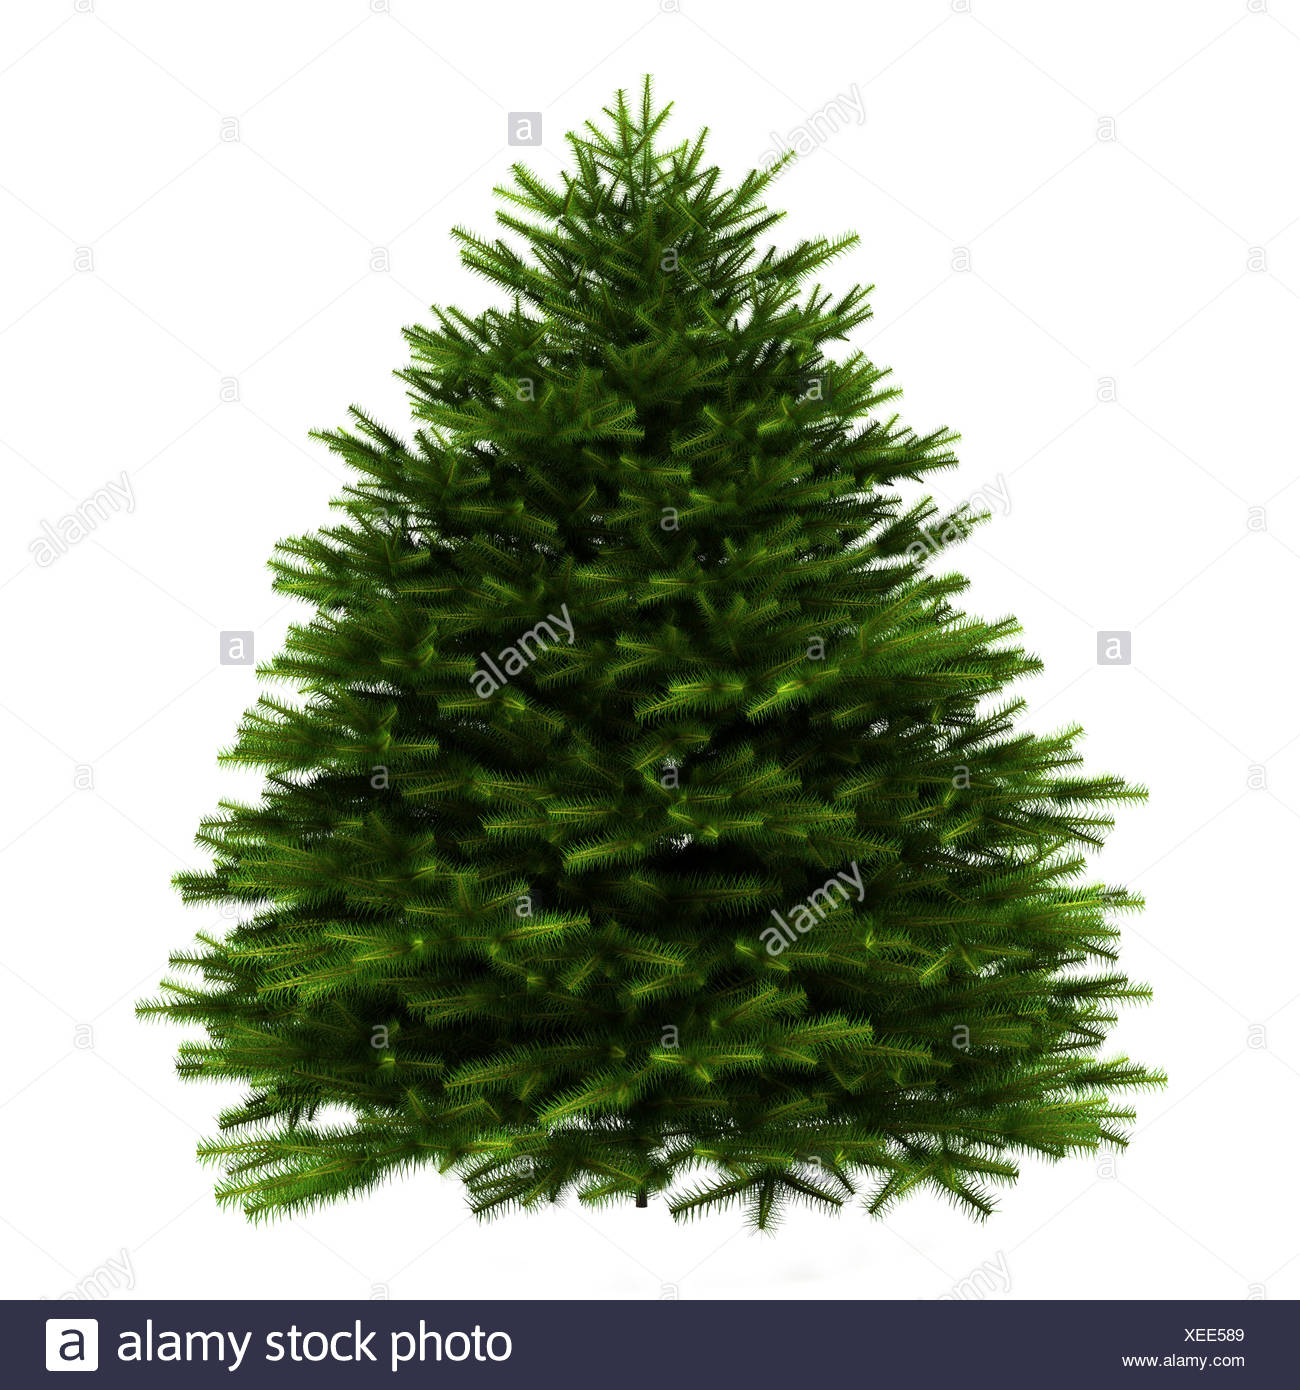 Abies Firma Stock Photos Abies Firma Stock Images Alamy